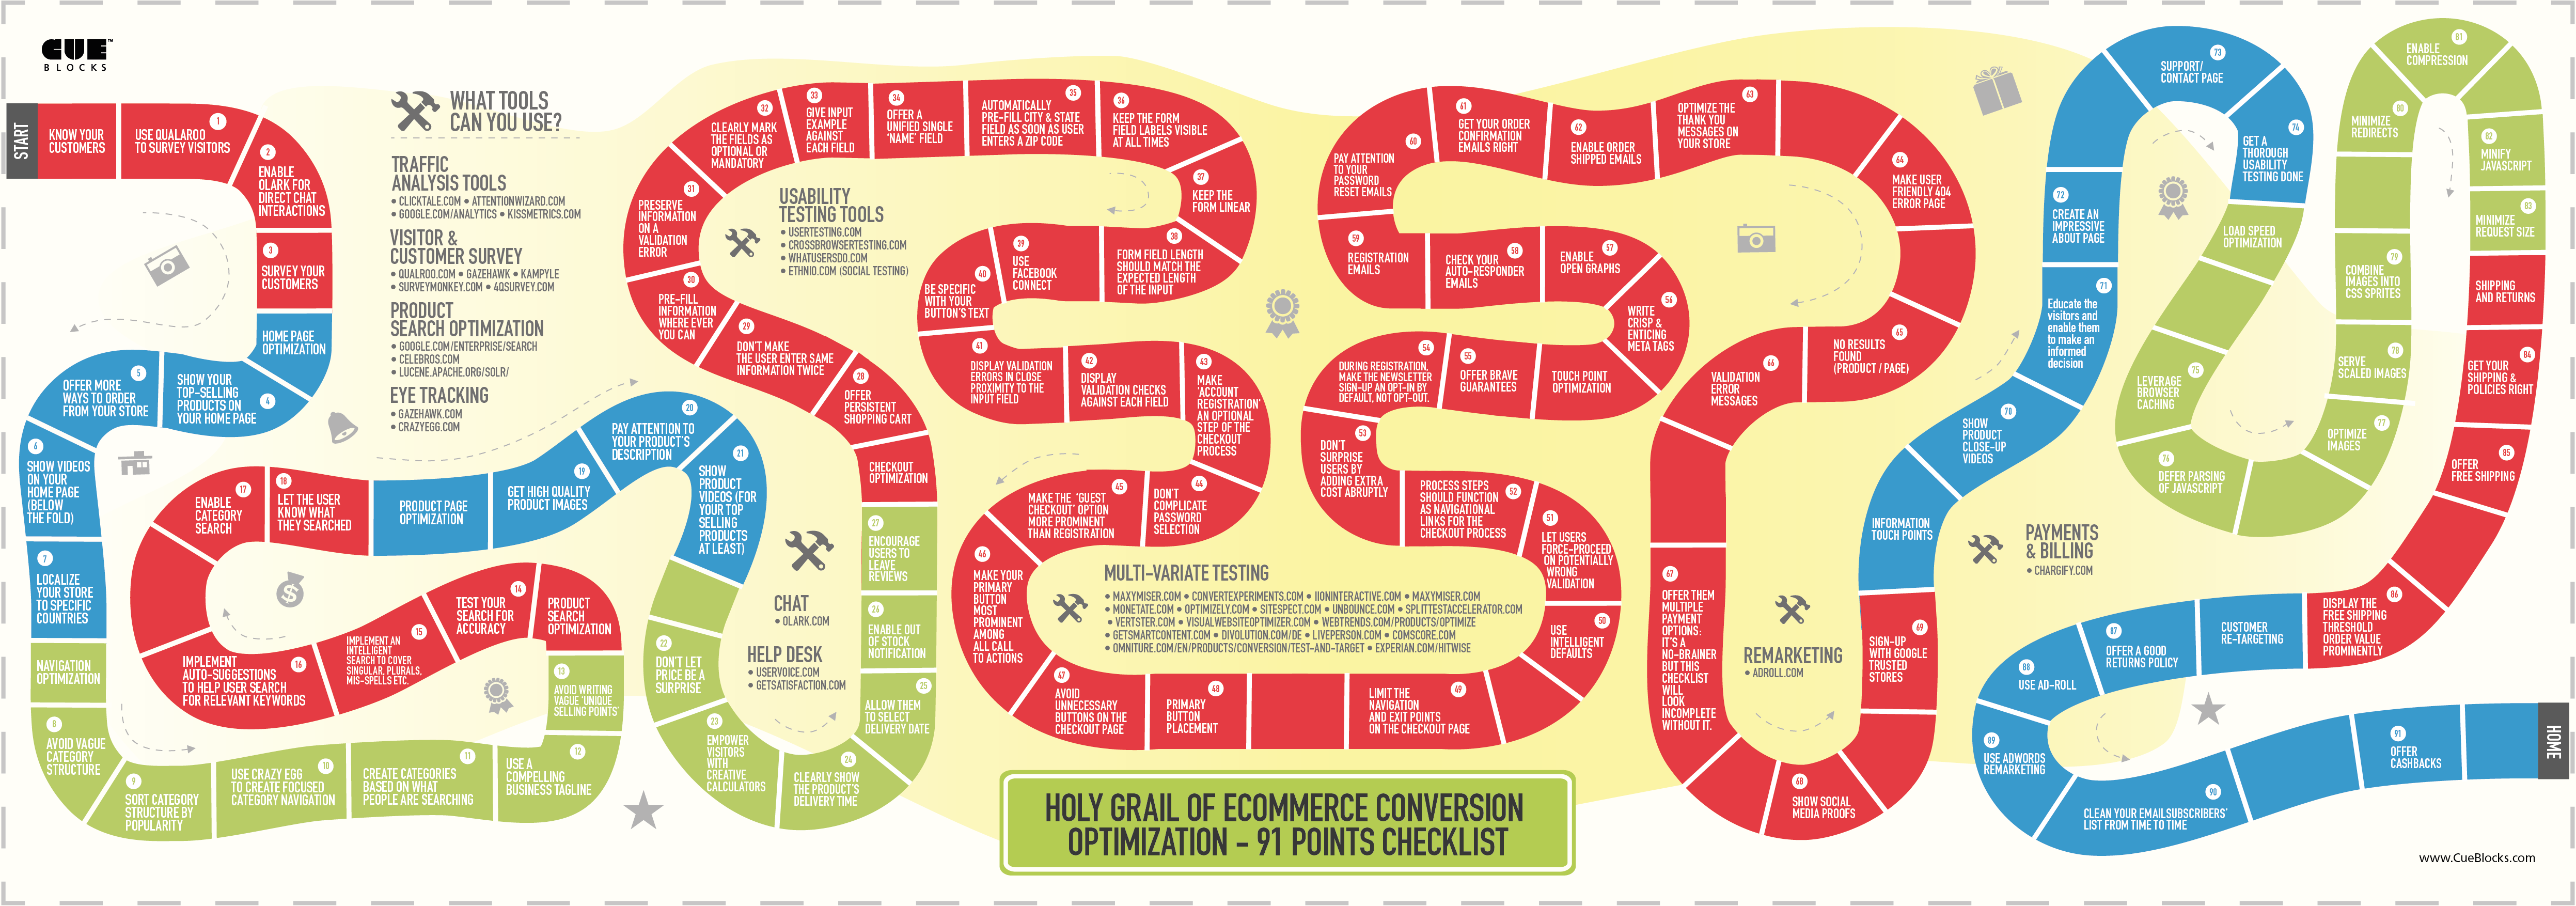 Holy Grail of eCommerce Conversion Optimization - 91 Points Checklist [Infographic]